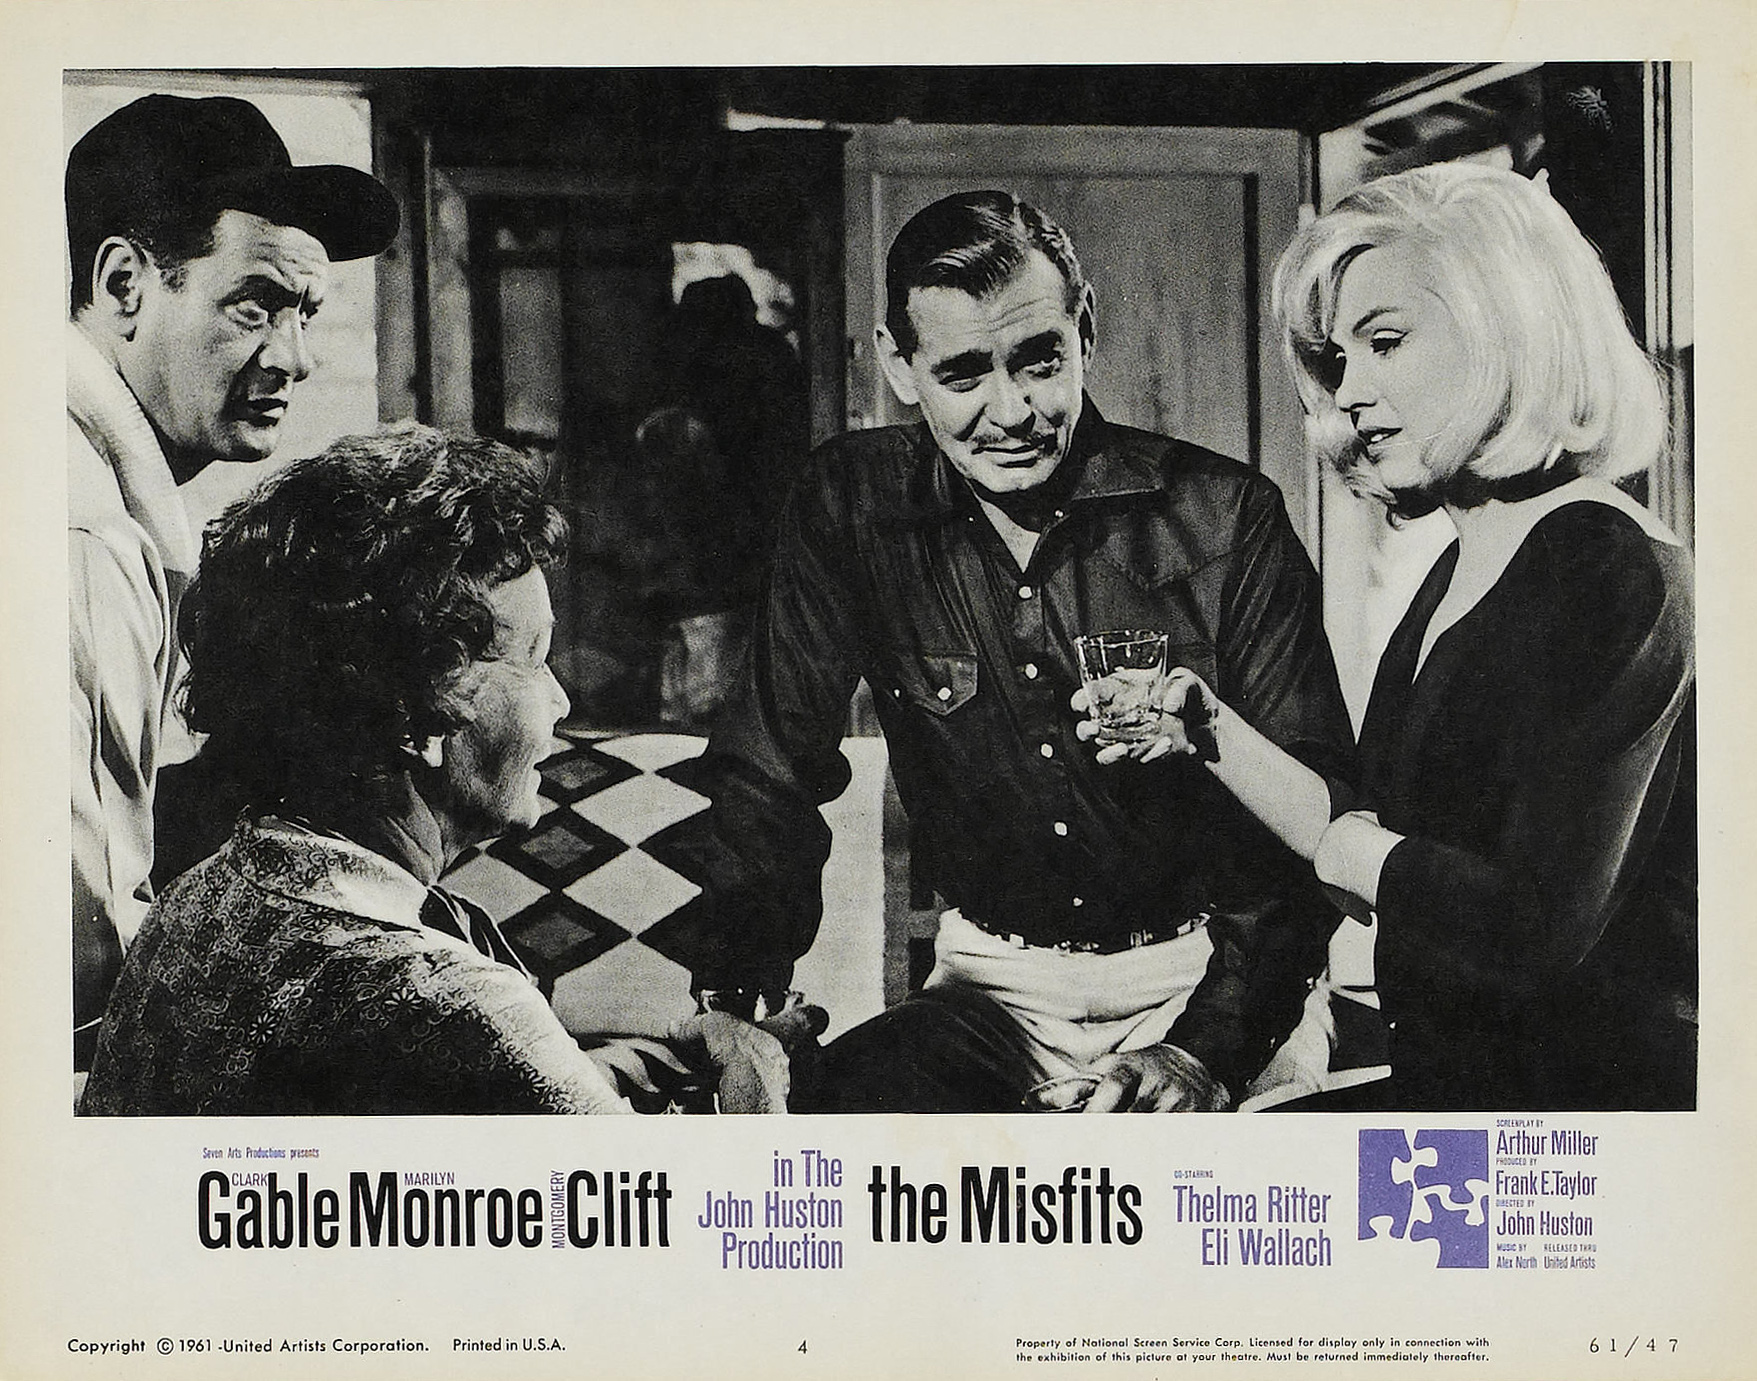 The misfits movie